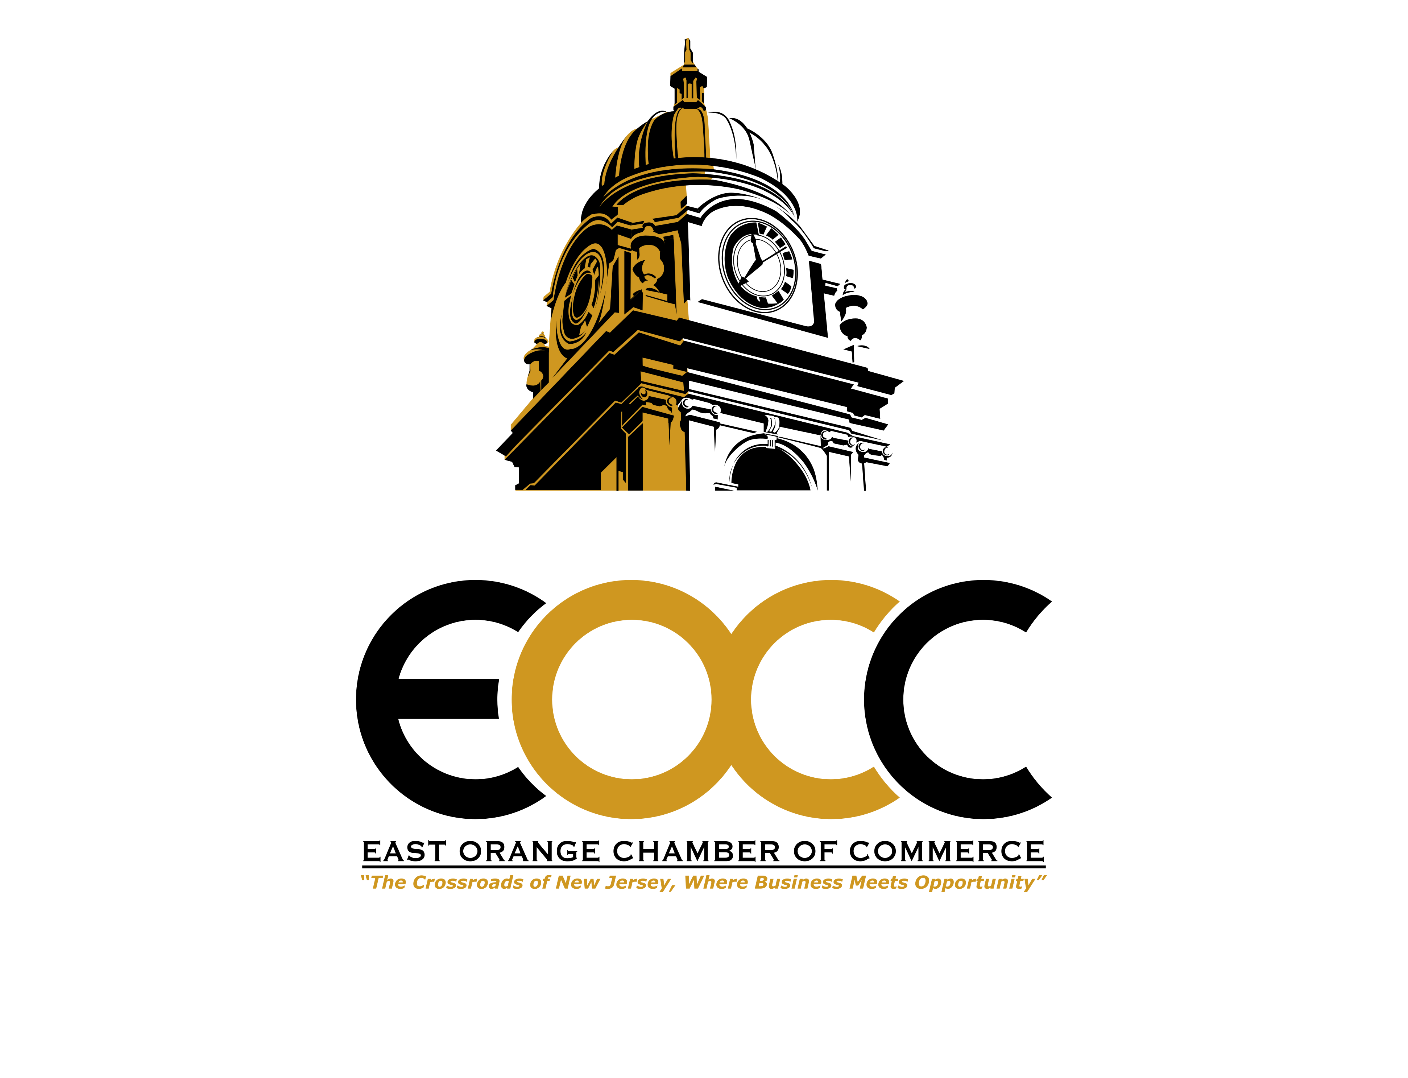 East Orange Chamber of Commerce